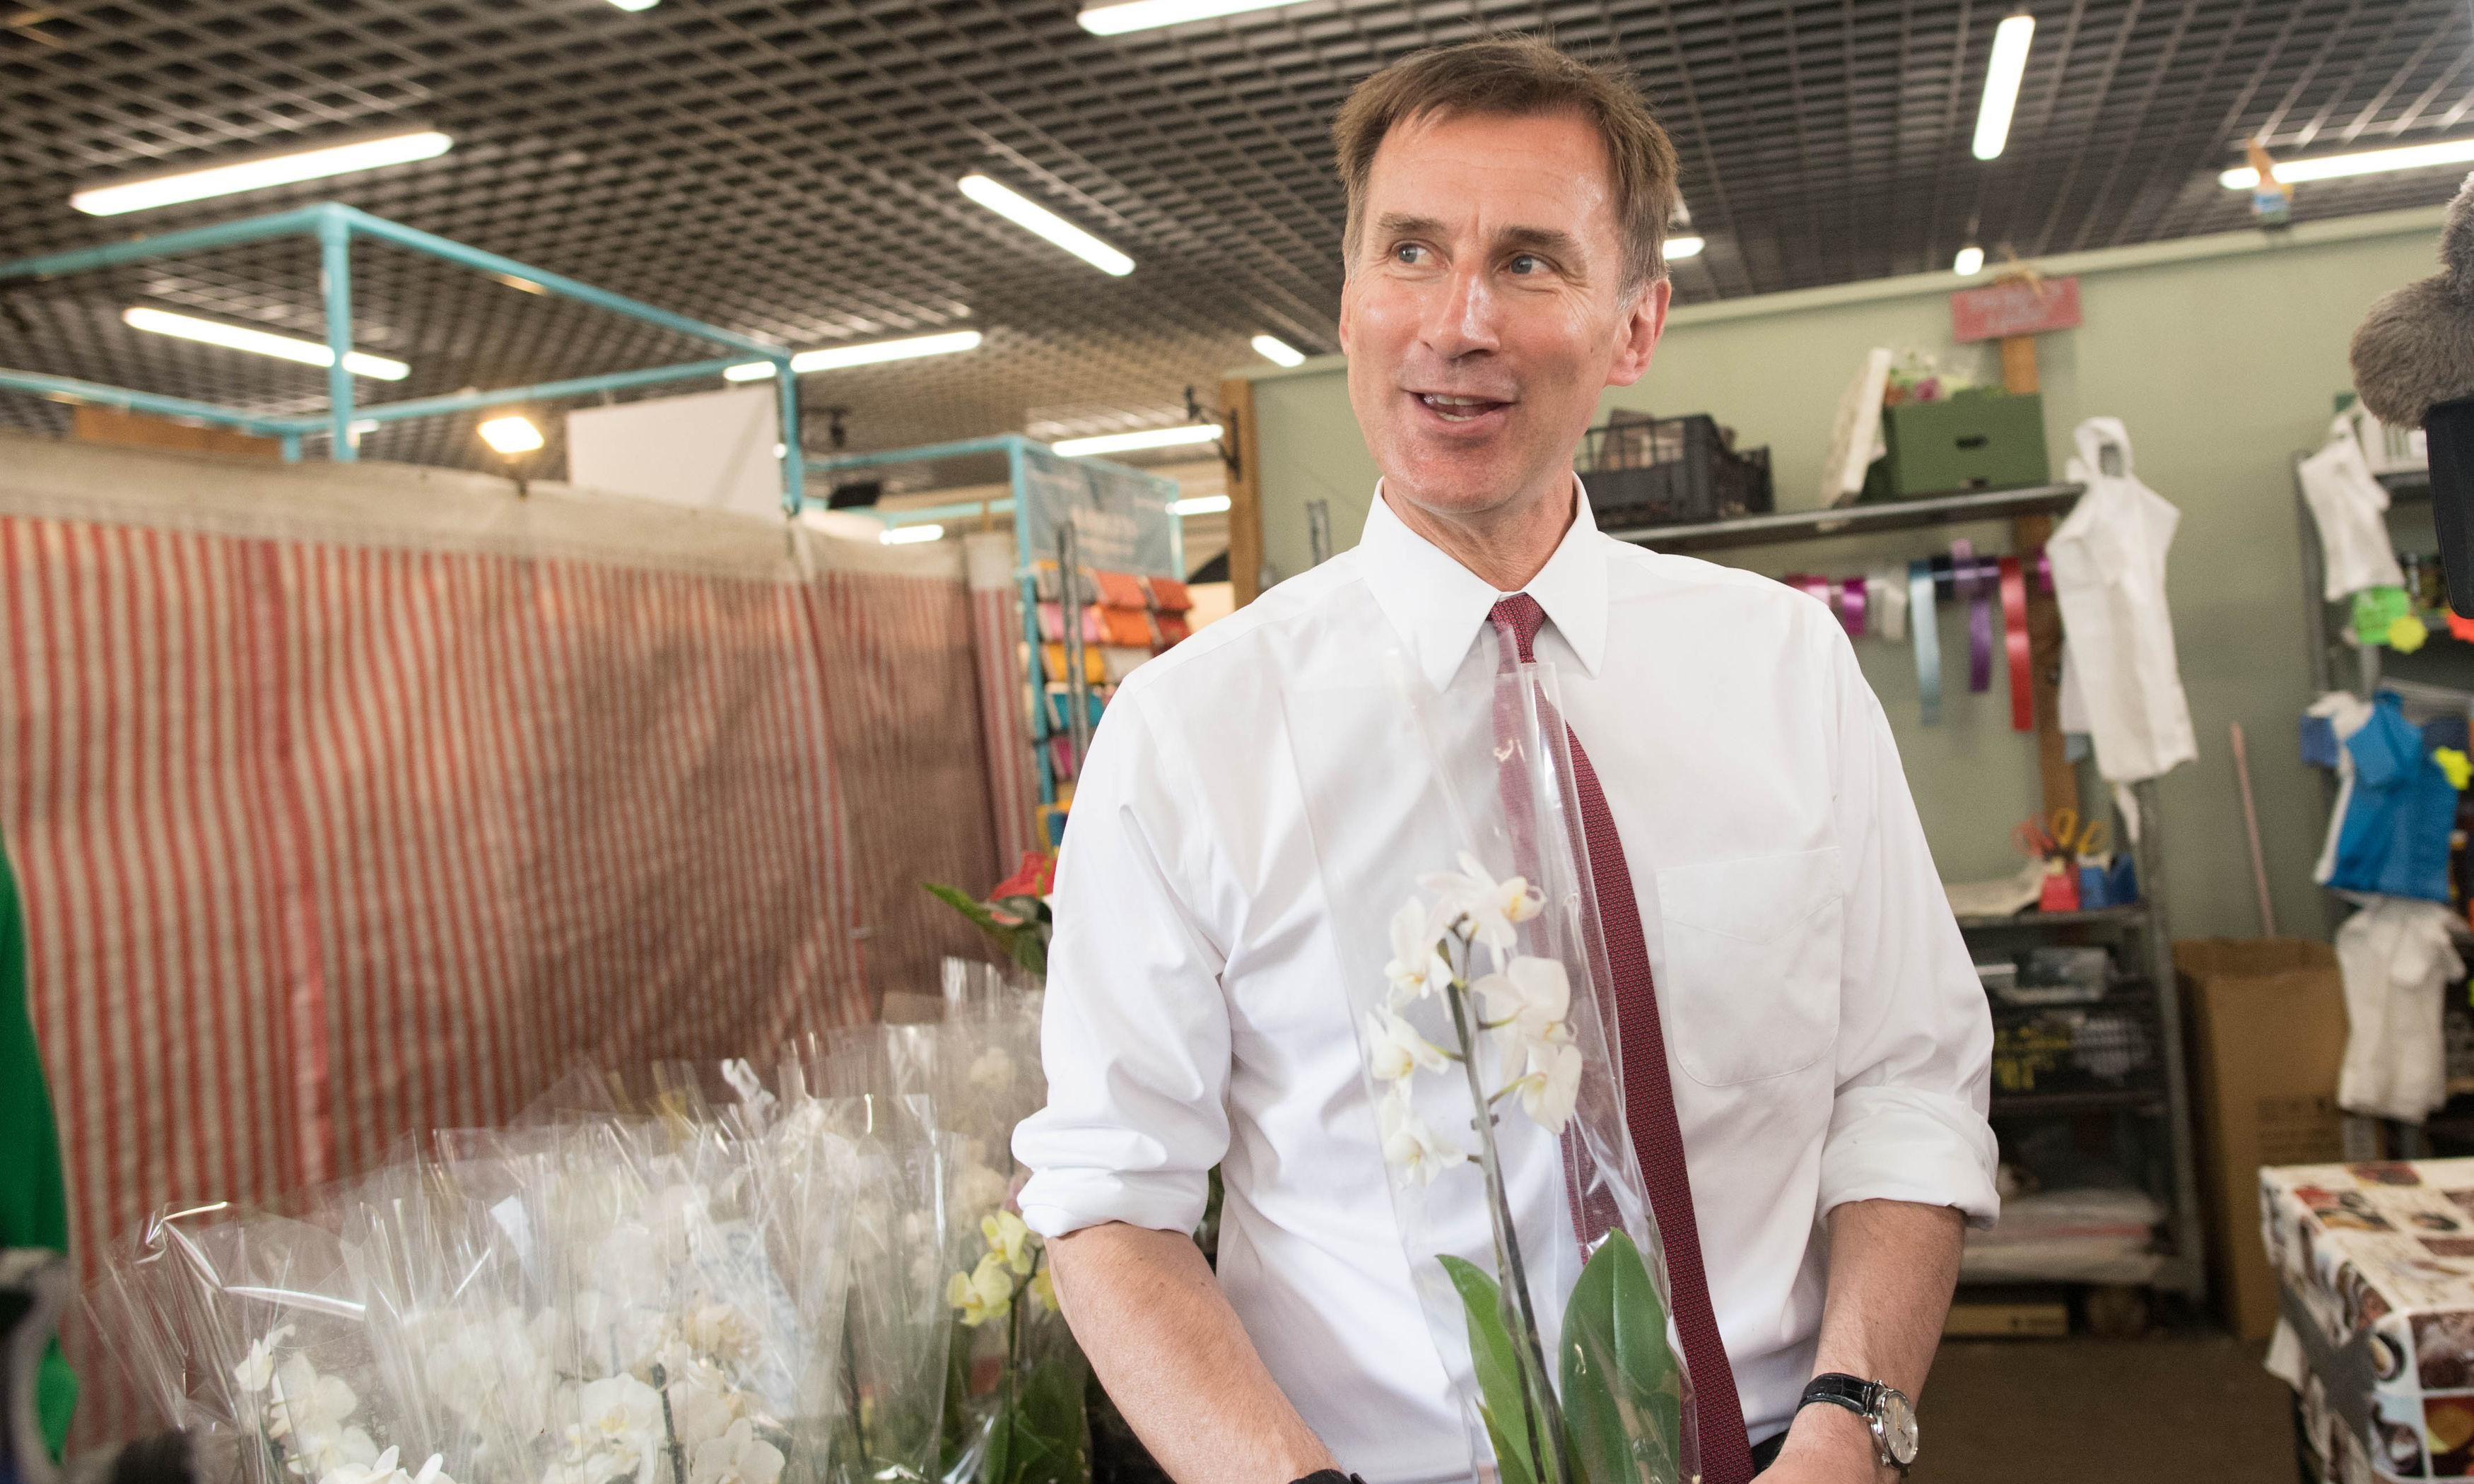 Care for the elderly is a scandal – but don't expect a solution from Hunt or Johnson